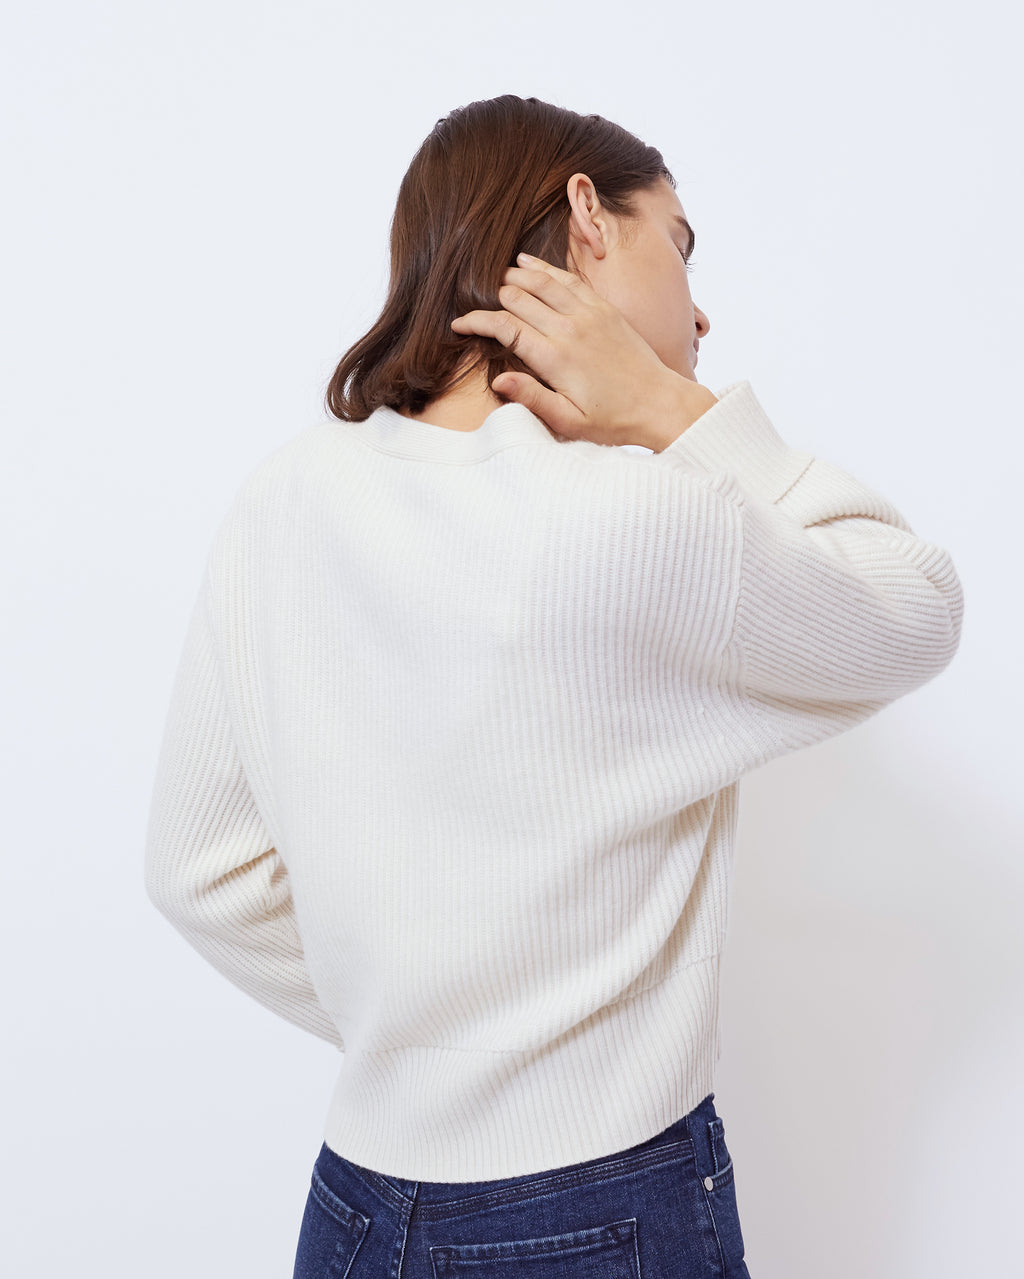 The Sparrow Sweater in Ivory